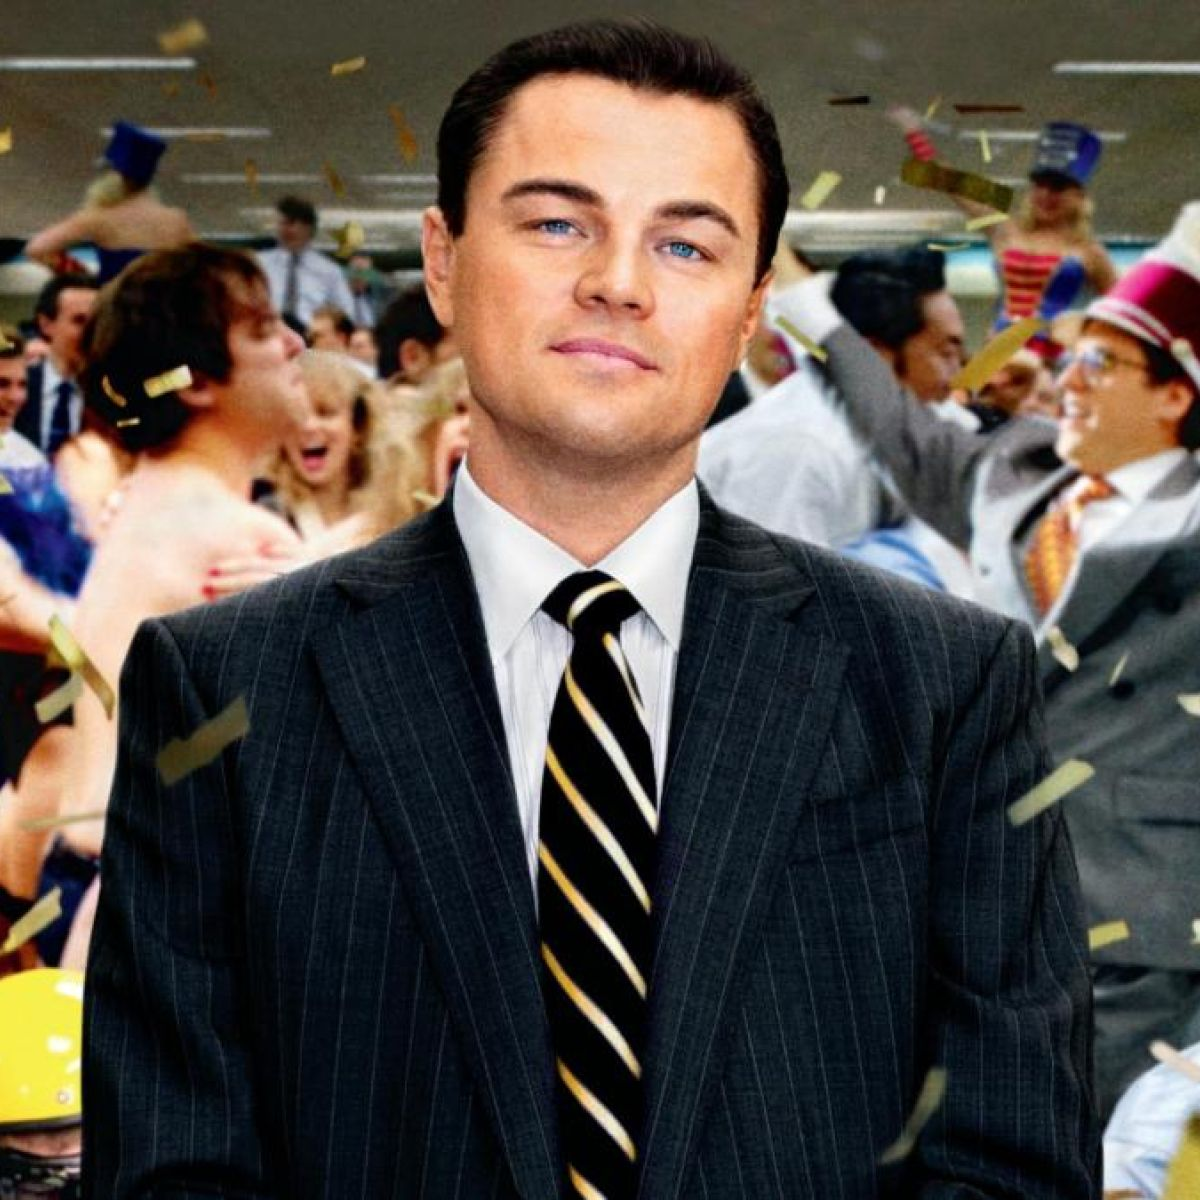 Immersive Wolf Of Wall Street To Bring Outrageous Behaviour To Secret Location